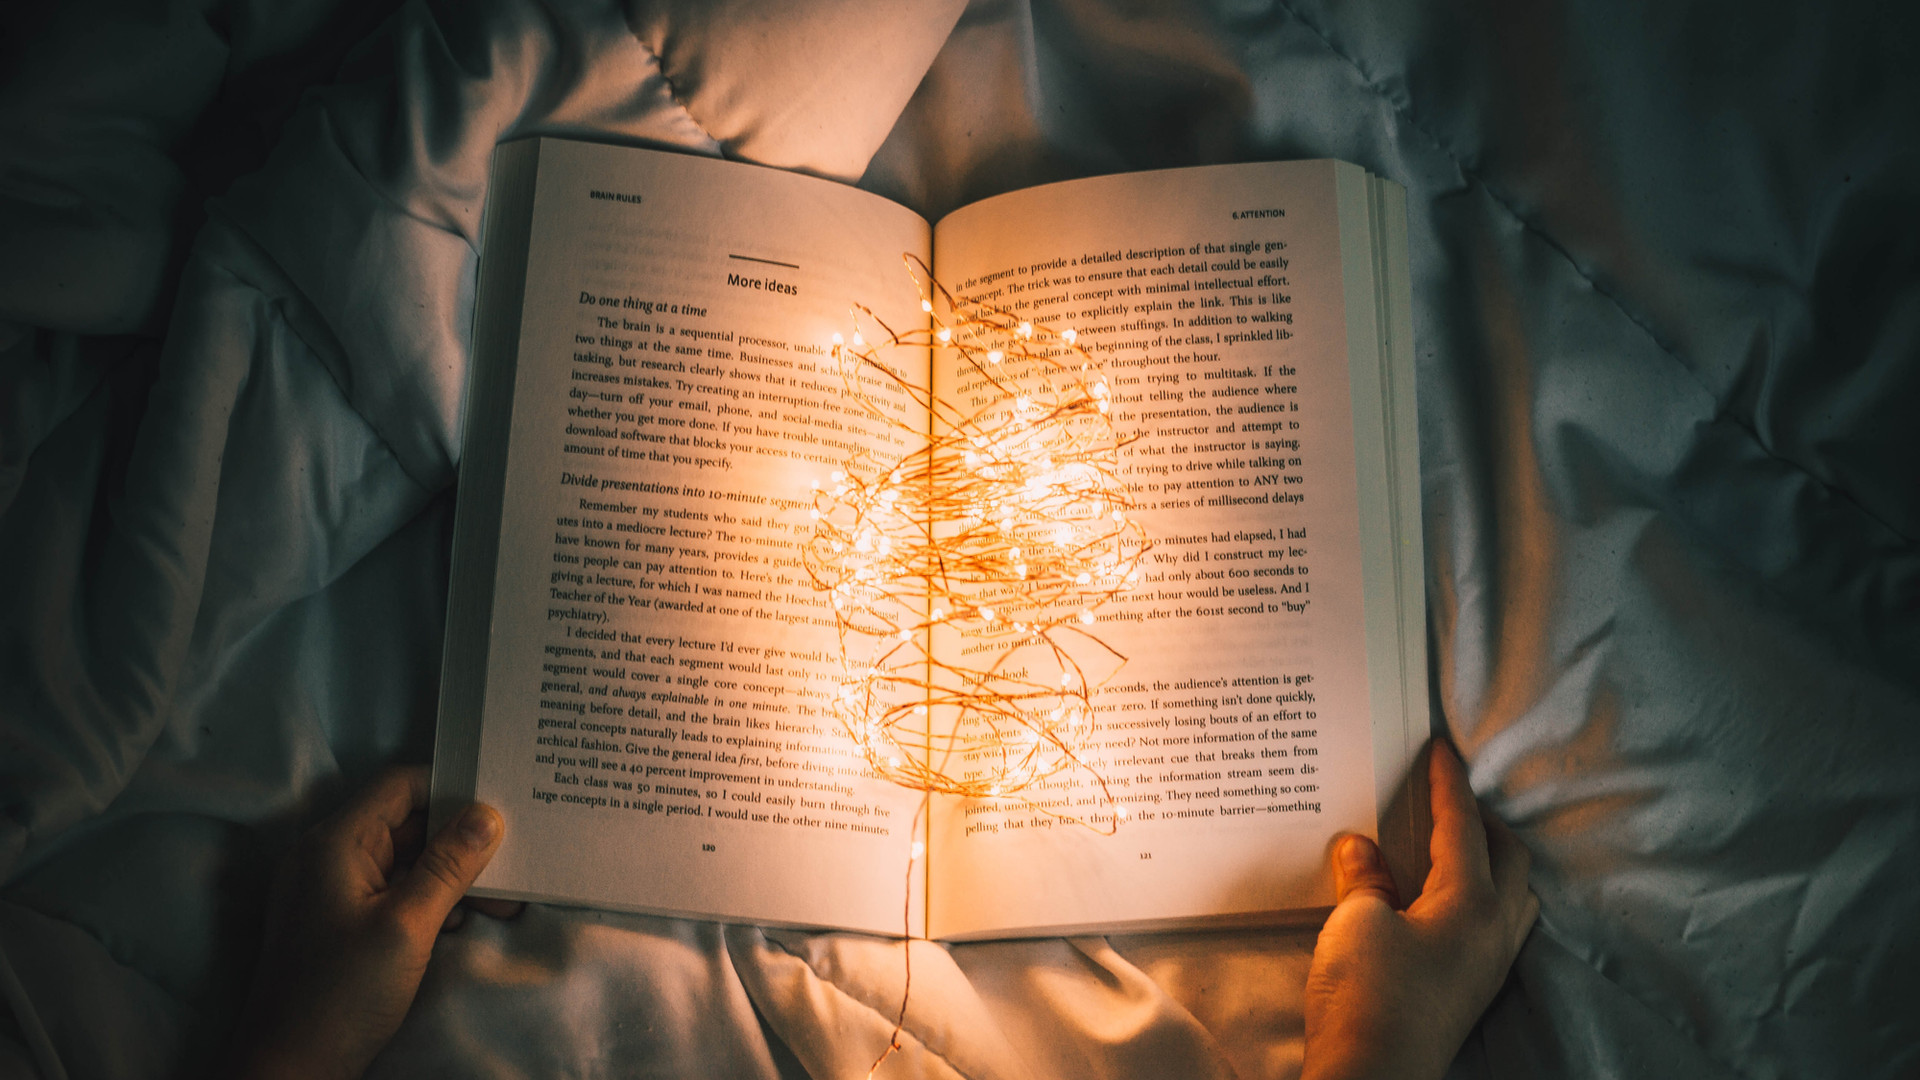 Book with fairy lights in the middle, illuminating the words